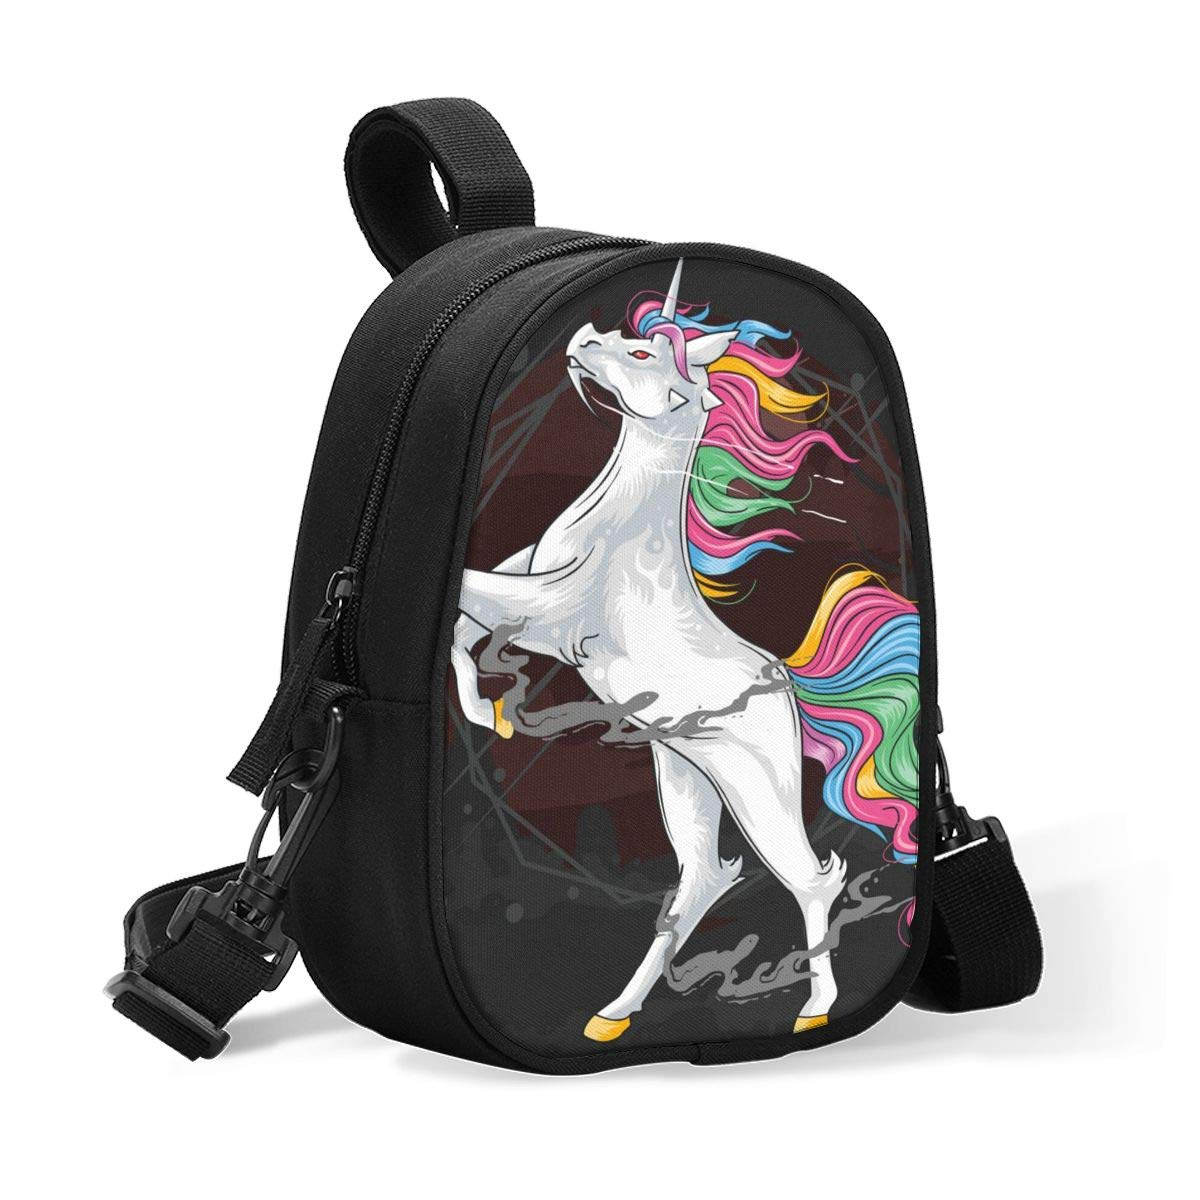 Breastmilk Baby Bottle Cooler & Travel Bag Marvellous Rainbow Unicorn Animal Horse Portable Breast Milk Storage Insulated Baby Bottle Carrier Tote Bag for Bottles Work Mommy Stroller Outdoor Use